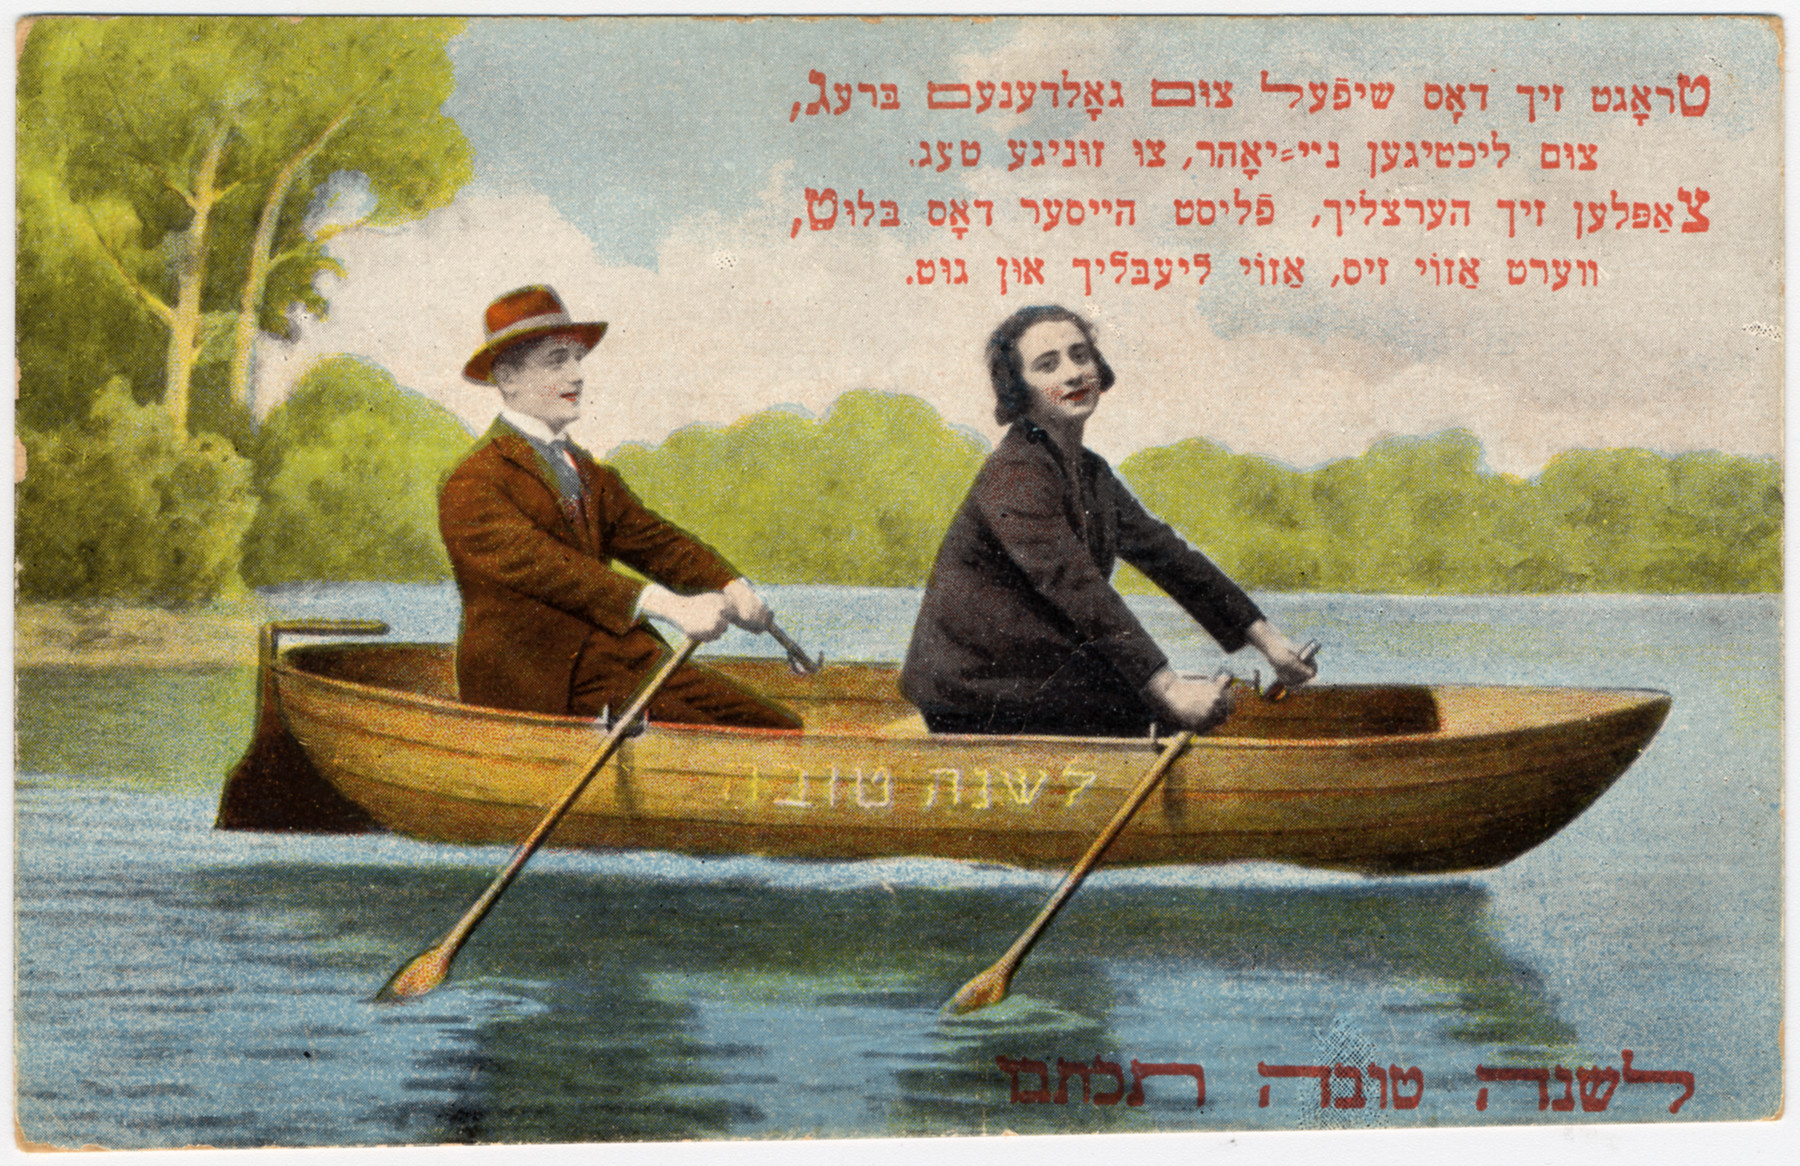 Israel Dauerman Klinghoffer wishes his wife, Ida Grabel, a happy new year in this postcard.